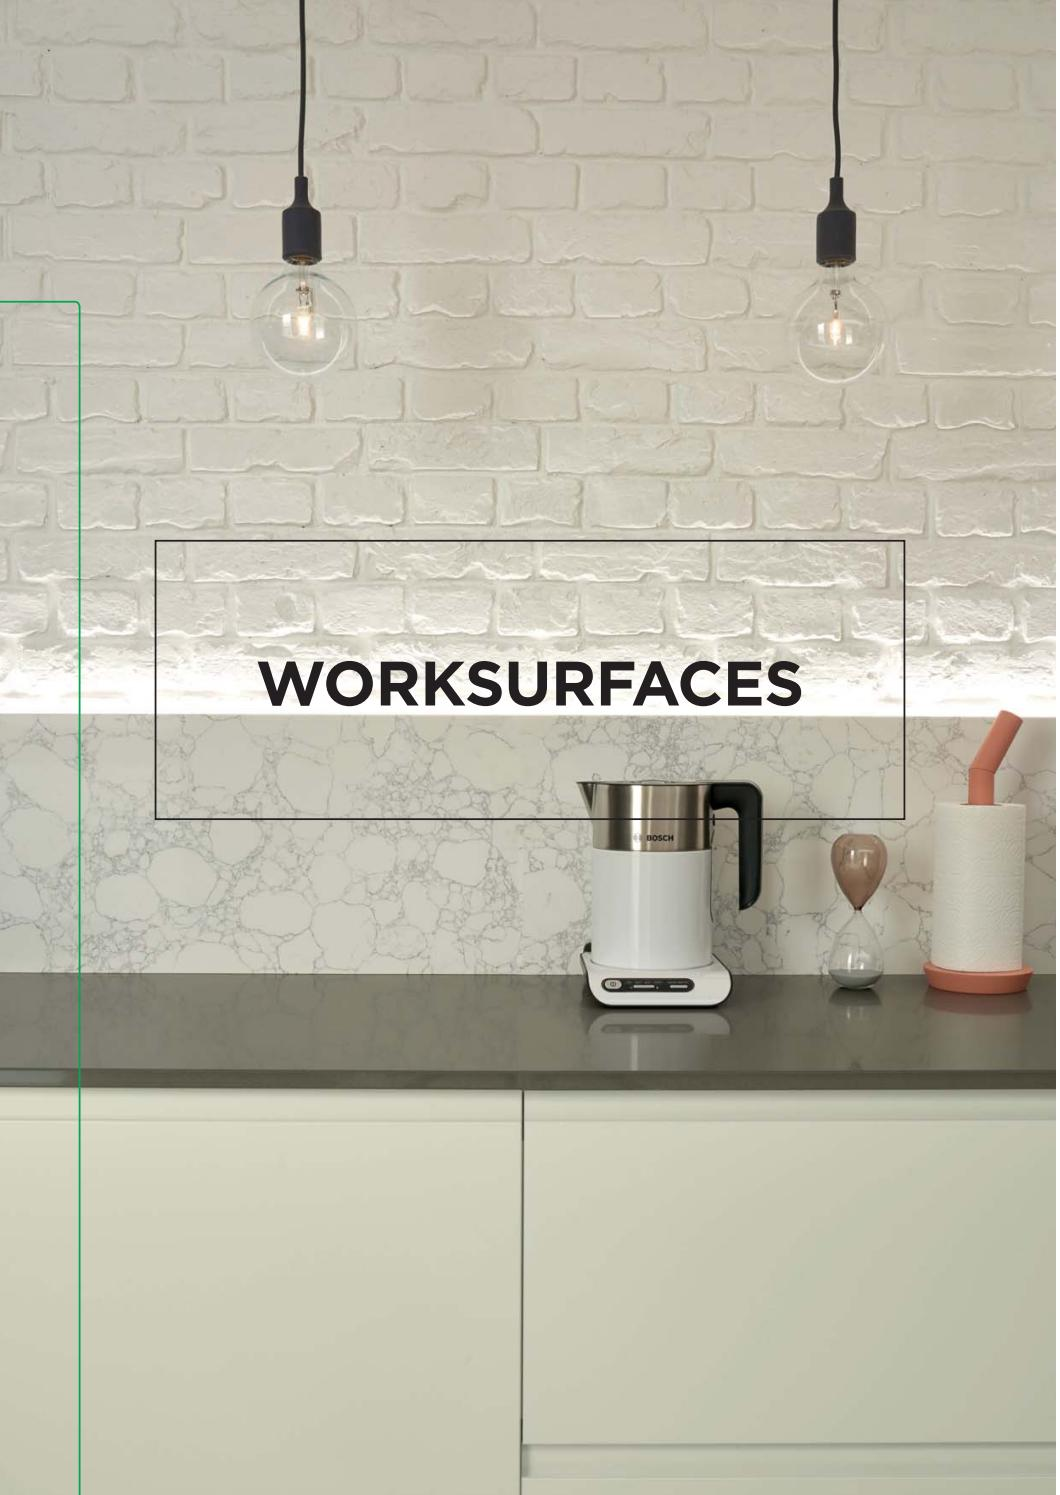 Section 2 worksurfaces by PWS Distributors Ltd - issuu